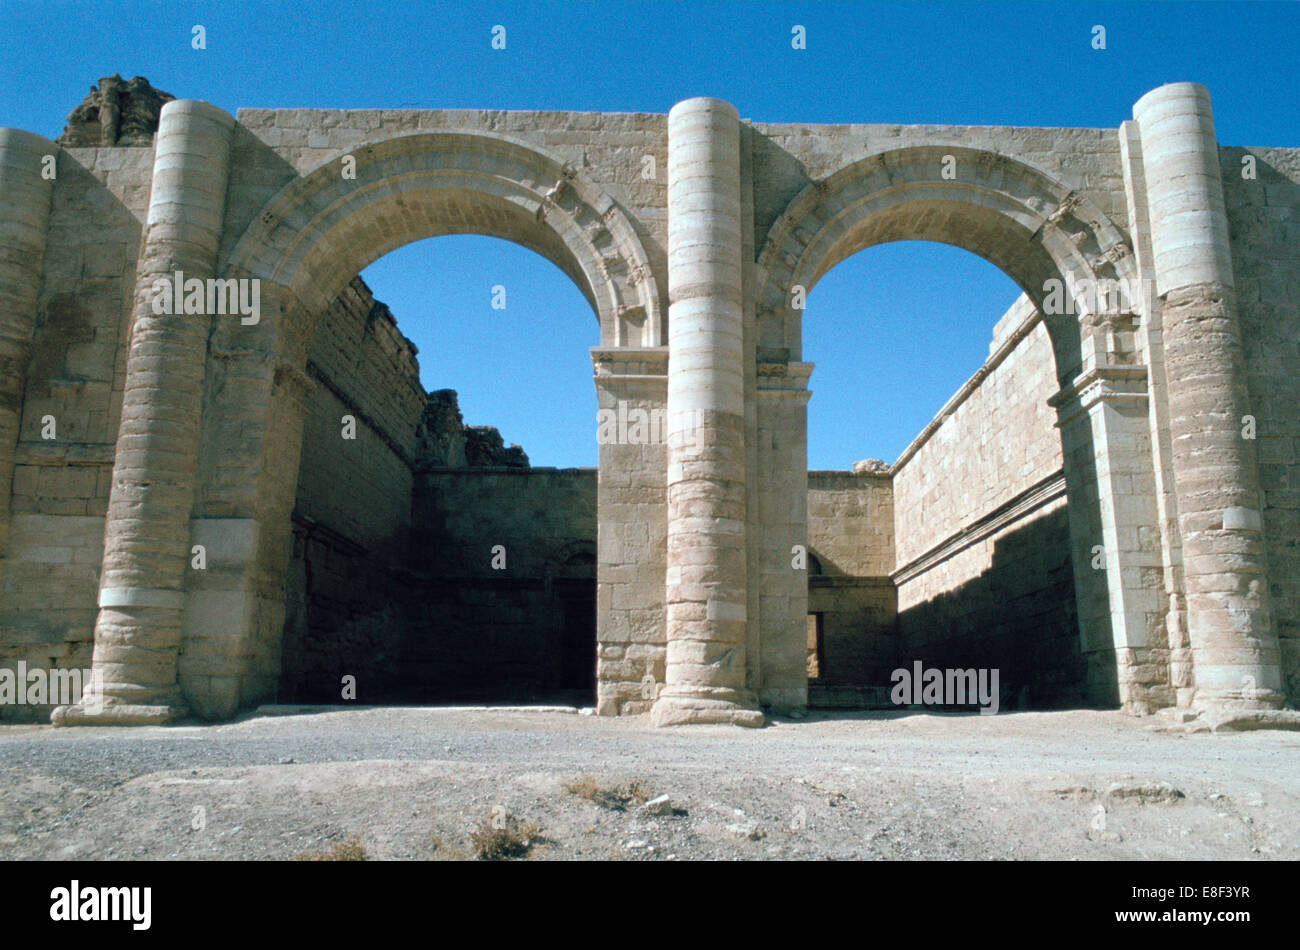 Temple of the Sun, Hatra (Al-Hadr), Iraq, 1977. - Stock Image